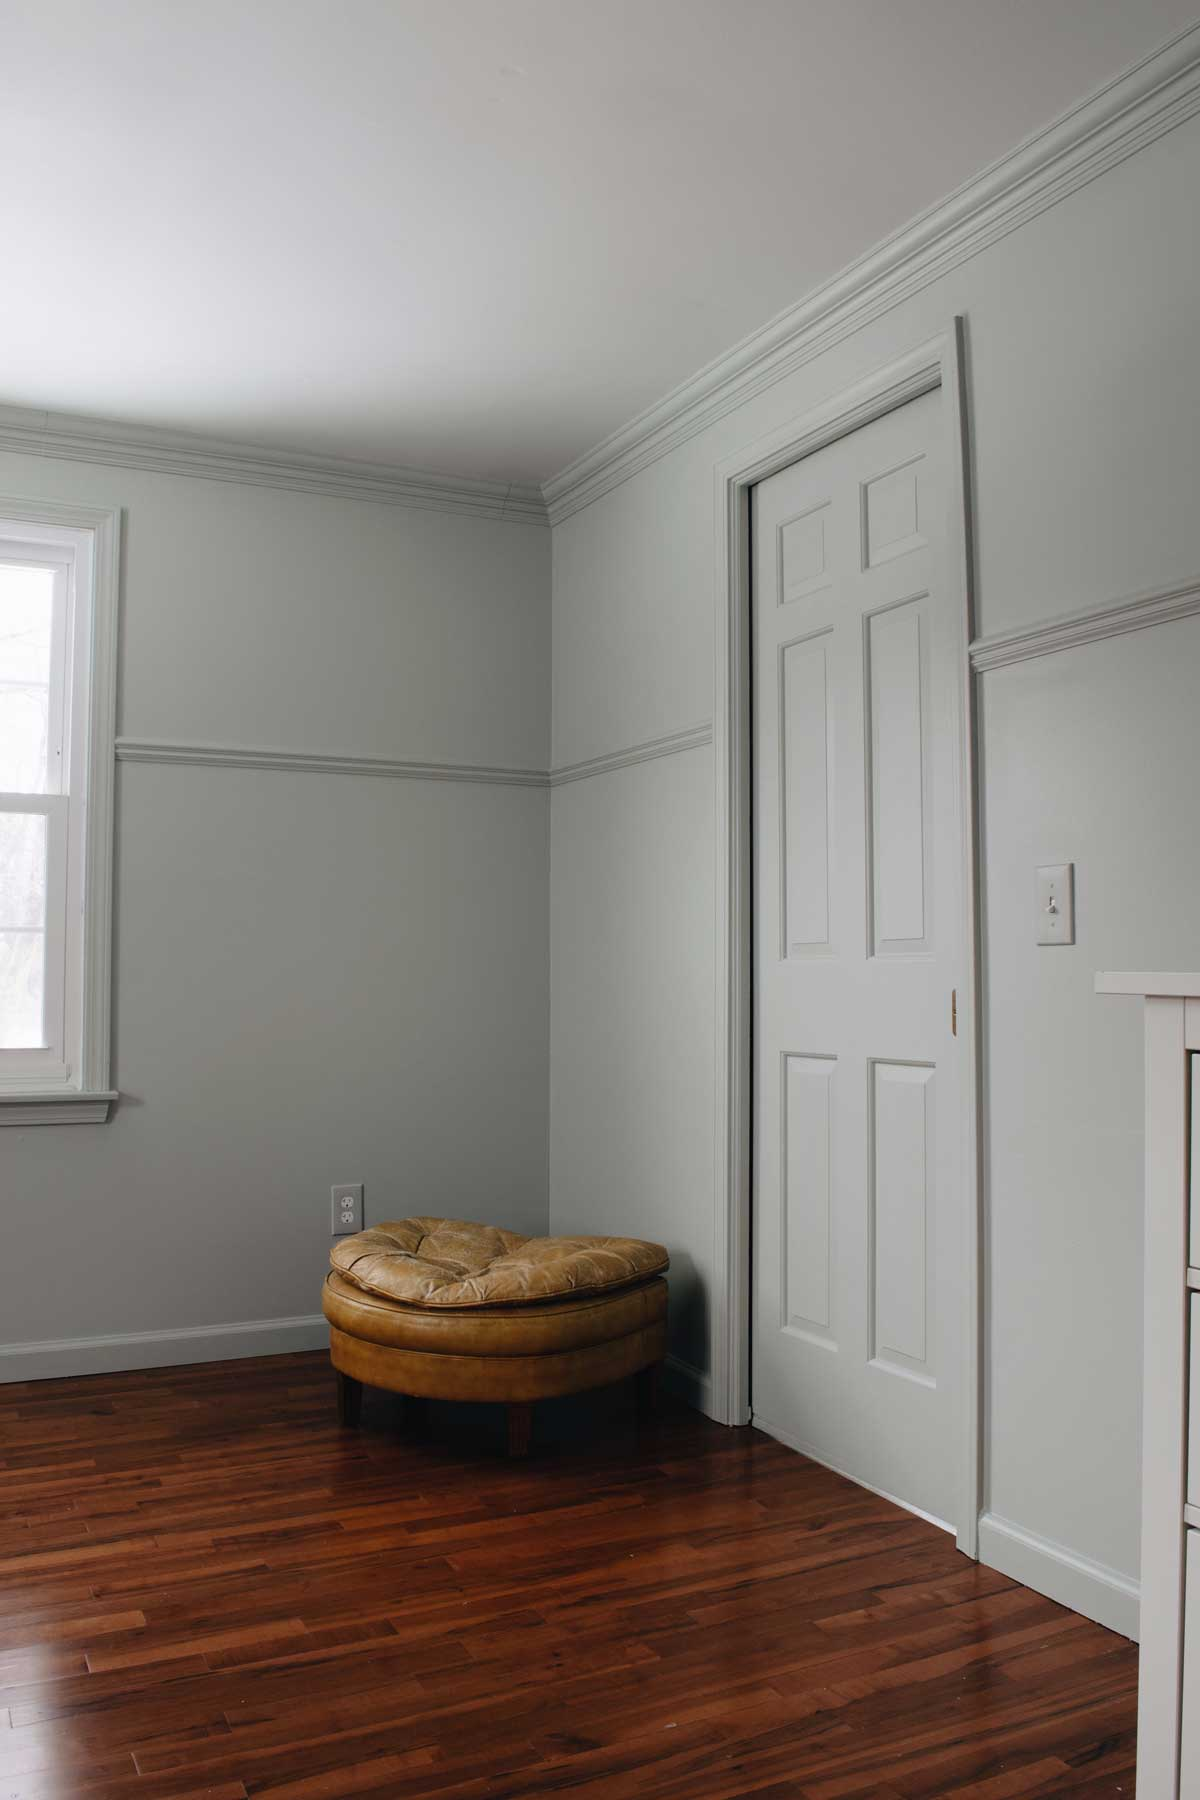 PAINTING WALLS AND TRIM THE SAME COLOR